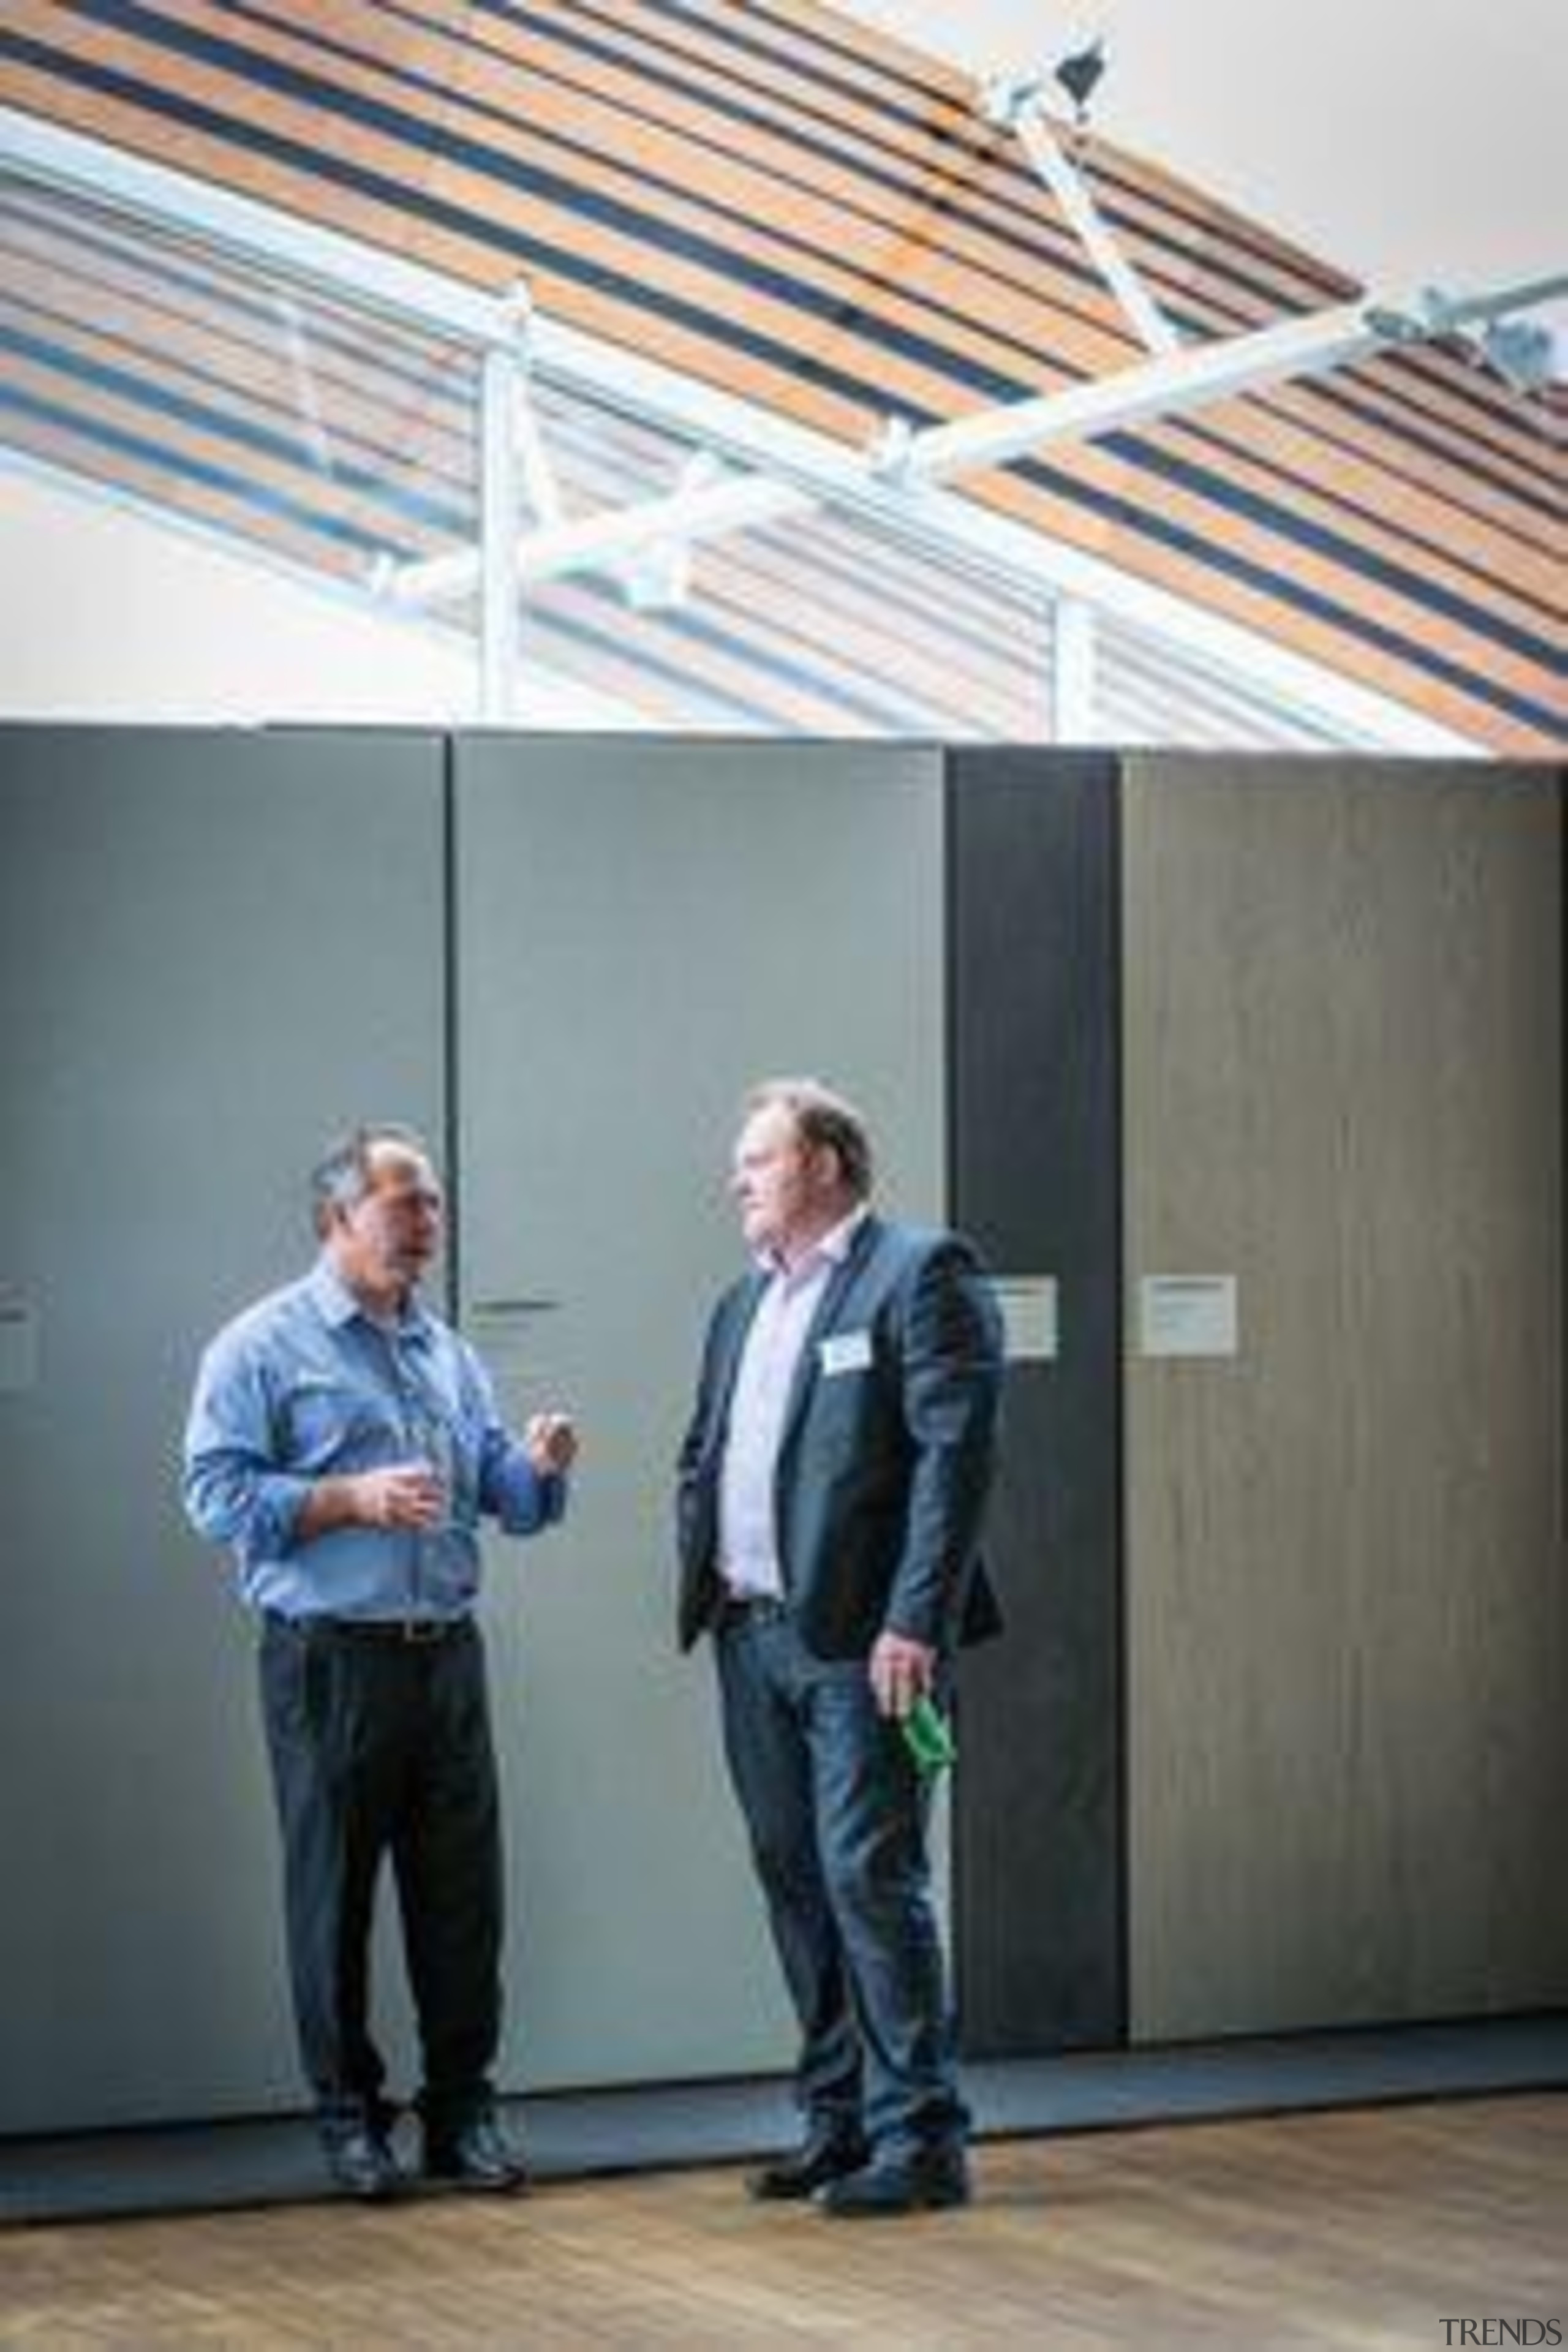 Gavin Norrington, Sika NZ, and Andy Lamont, Europica ceiling, standing, window, gray